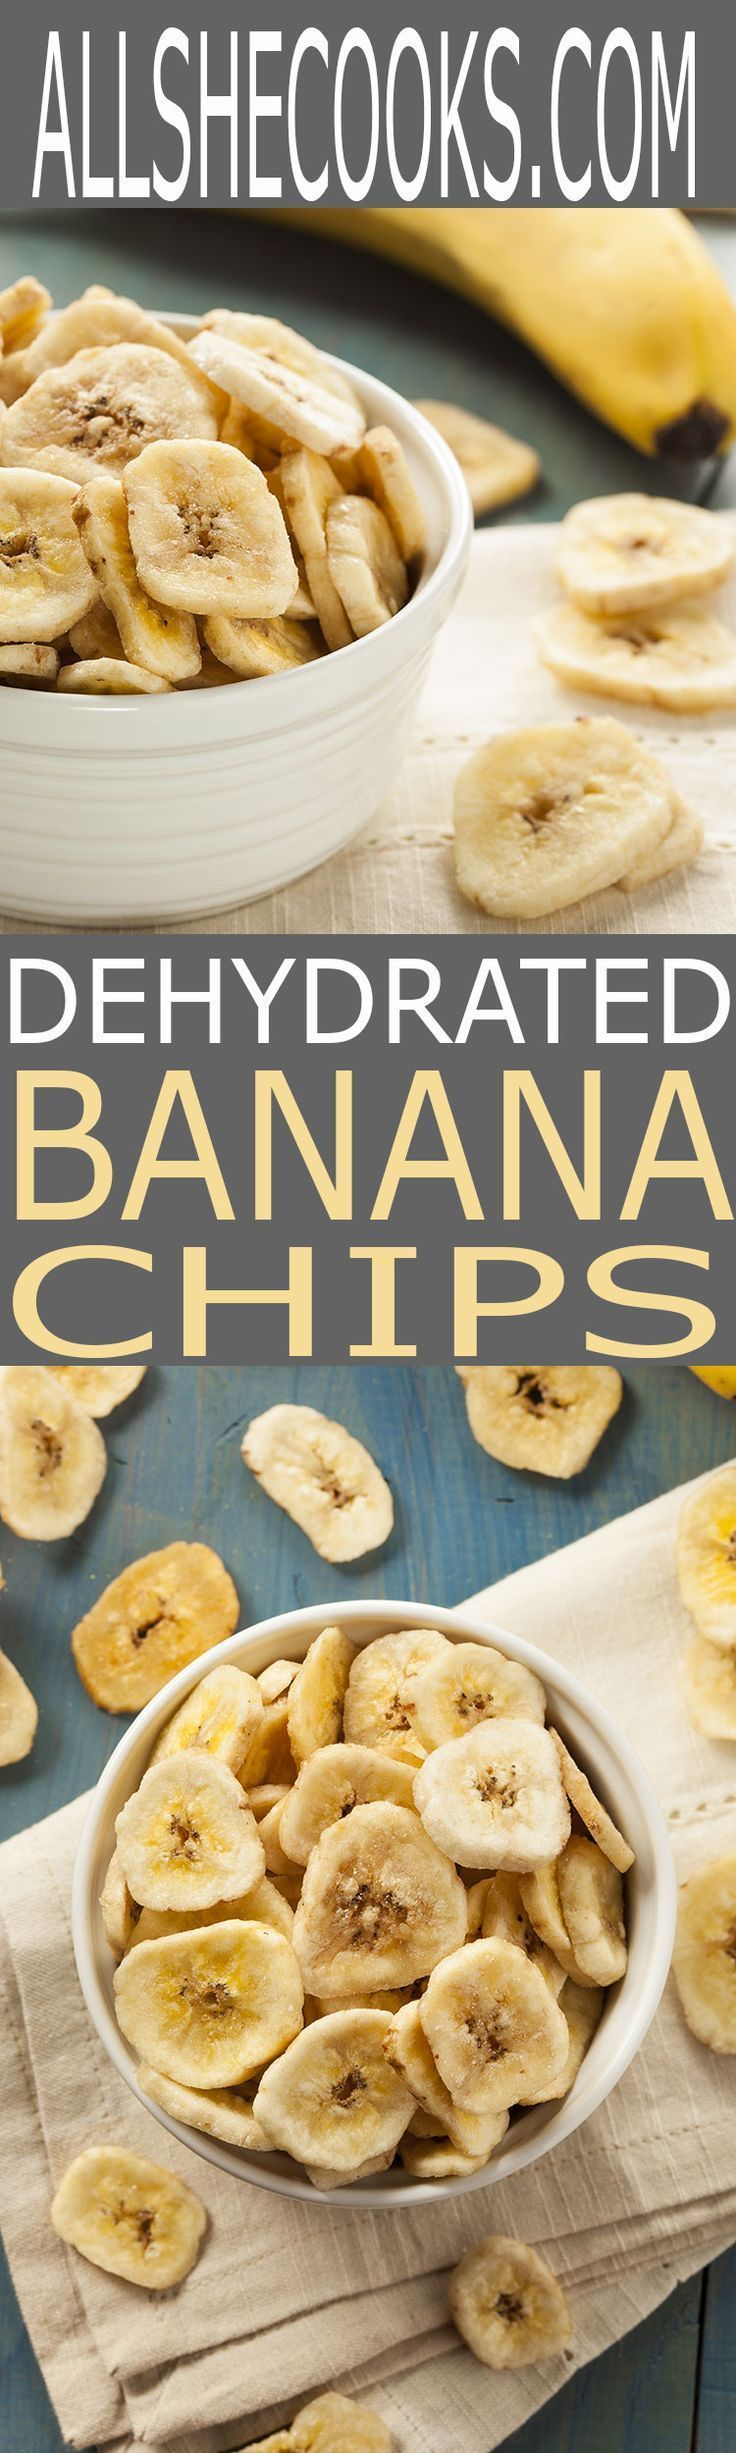 Dehydrated Banana Chips are easy to make at home with or without a dehydrator. Banana Chips make for a healthy snack option that will fill you up until your next meal.